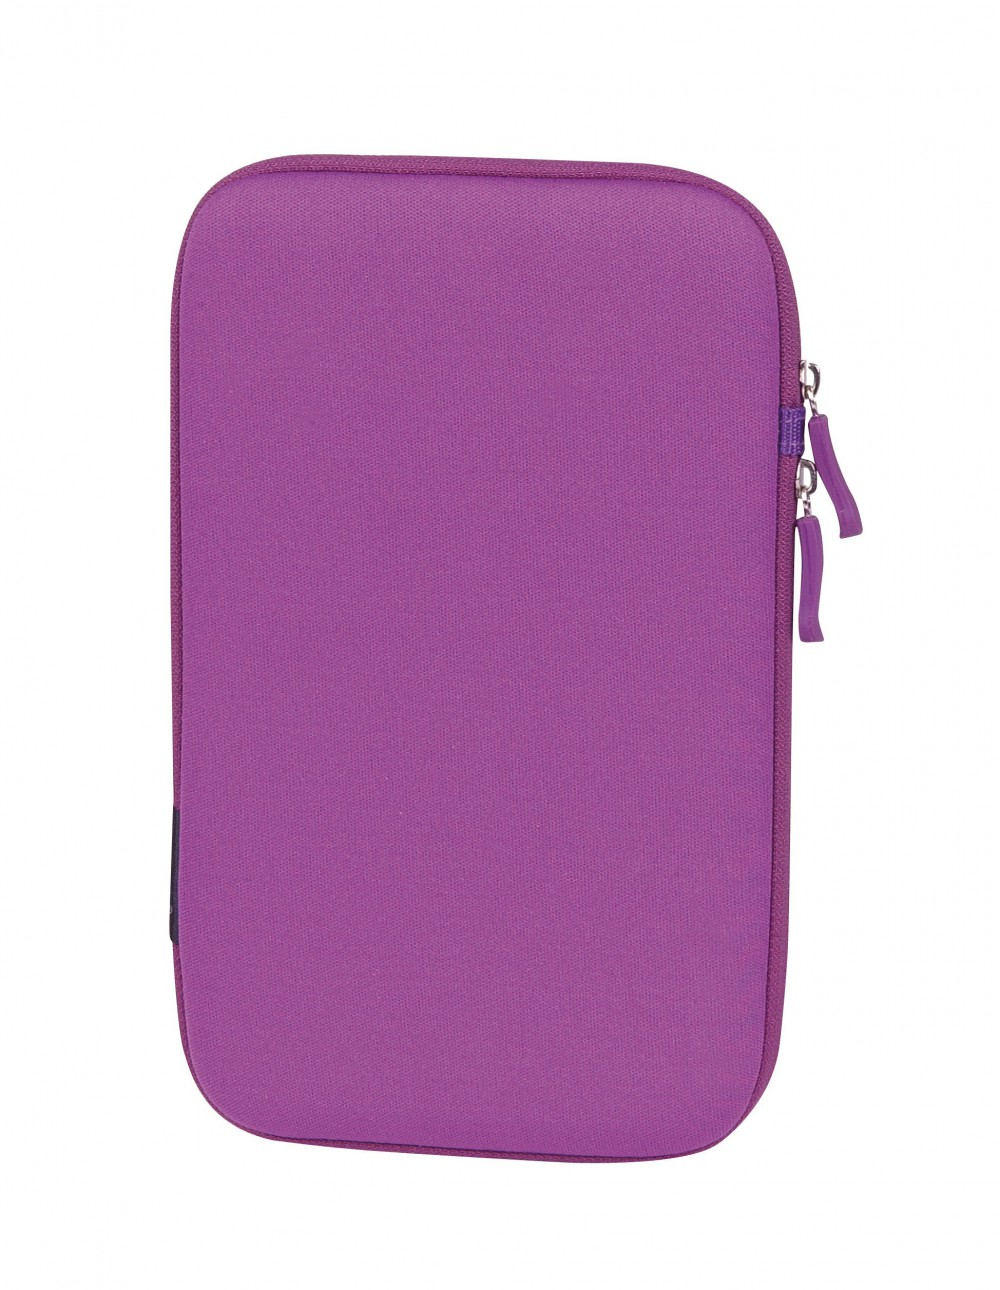 "SLIM COLORS-7"" SLEEVE-PURPLE"